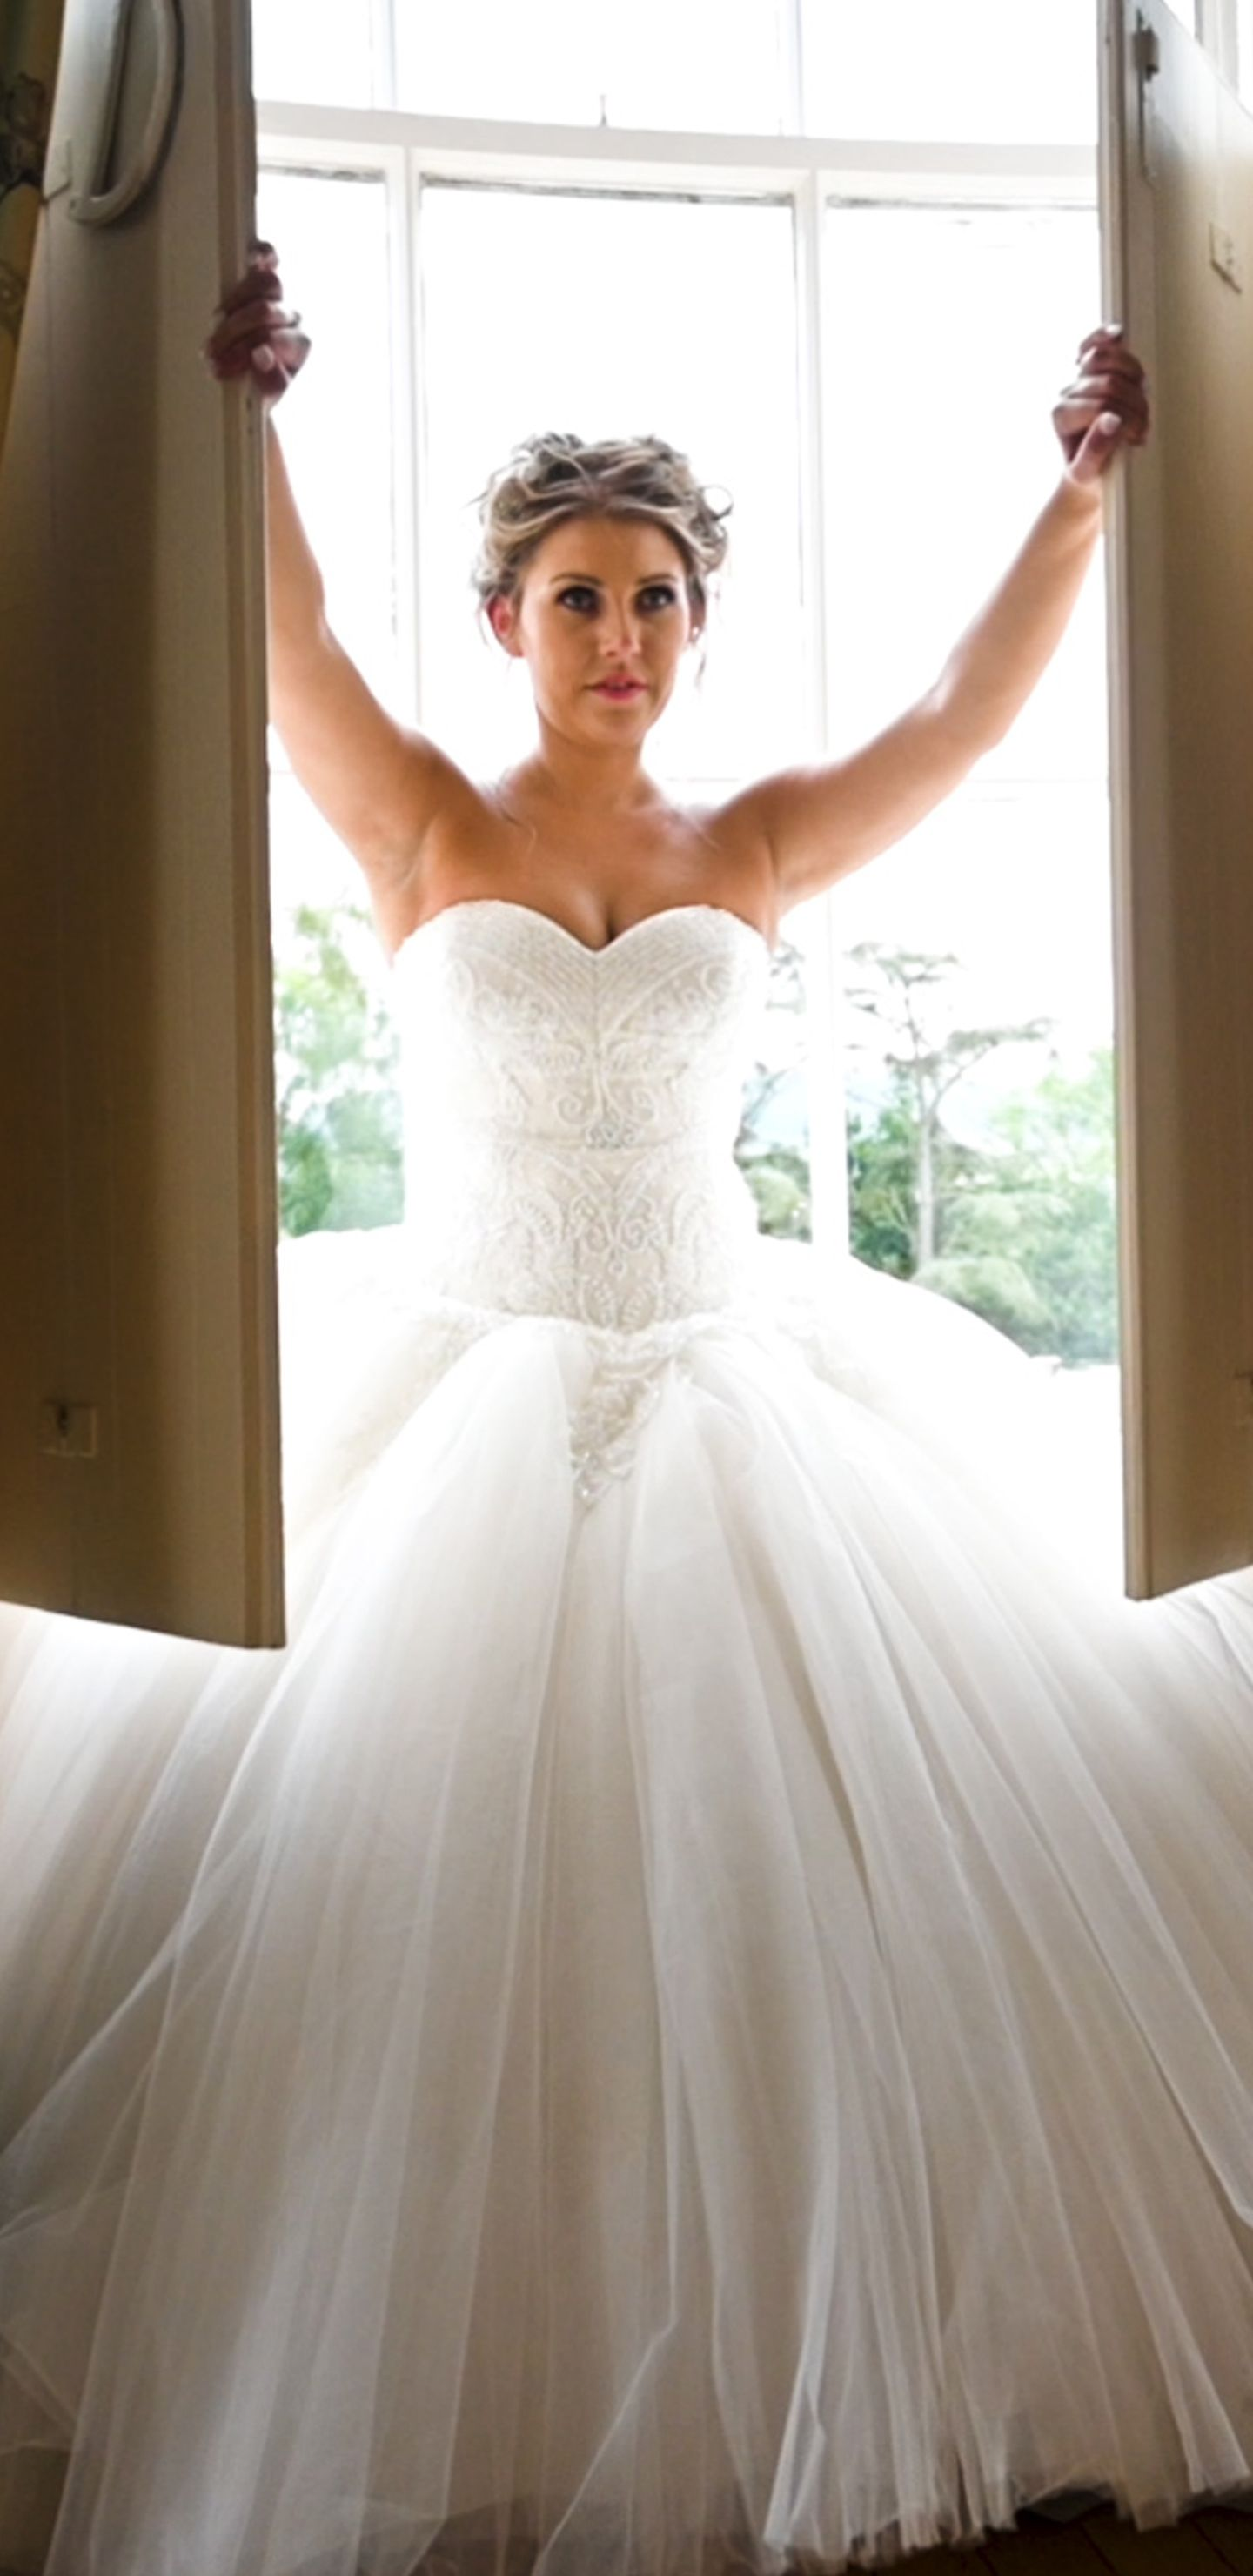 Bride in wedding dress standing in a window